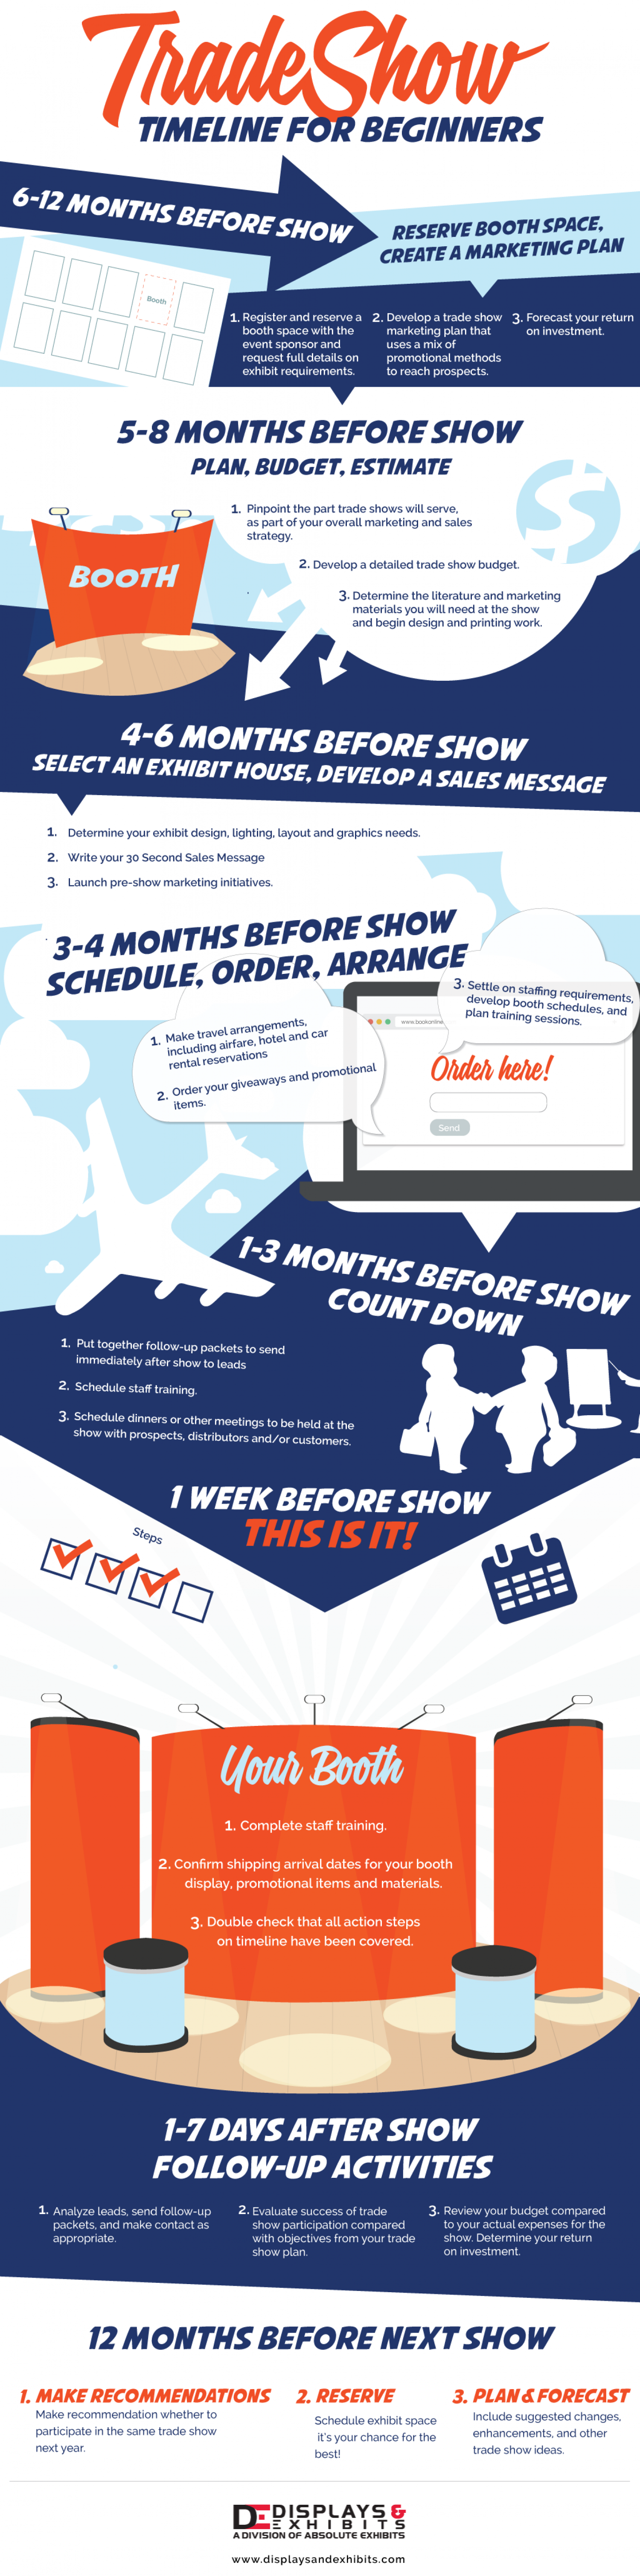 TradeShow Timeline For Beginners Infographic